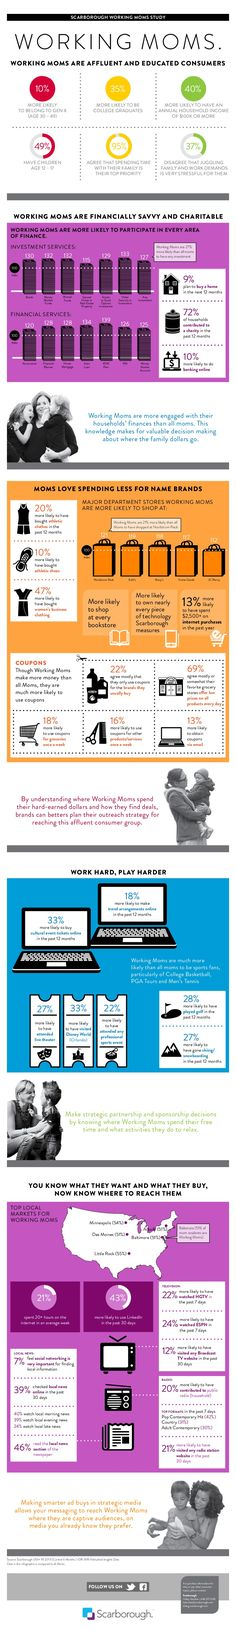 Working Moms   #infographic #WorkingMoms #Business